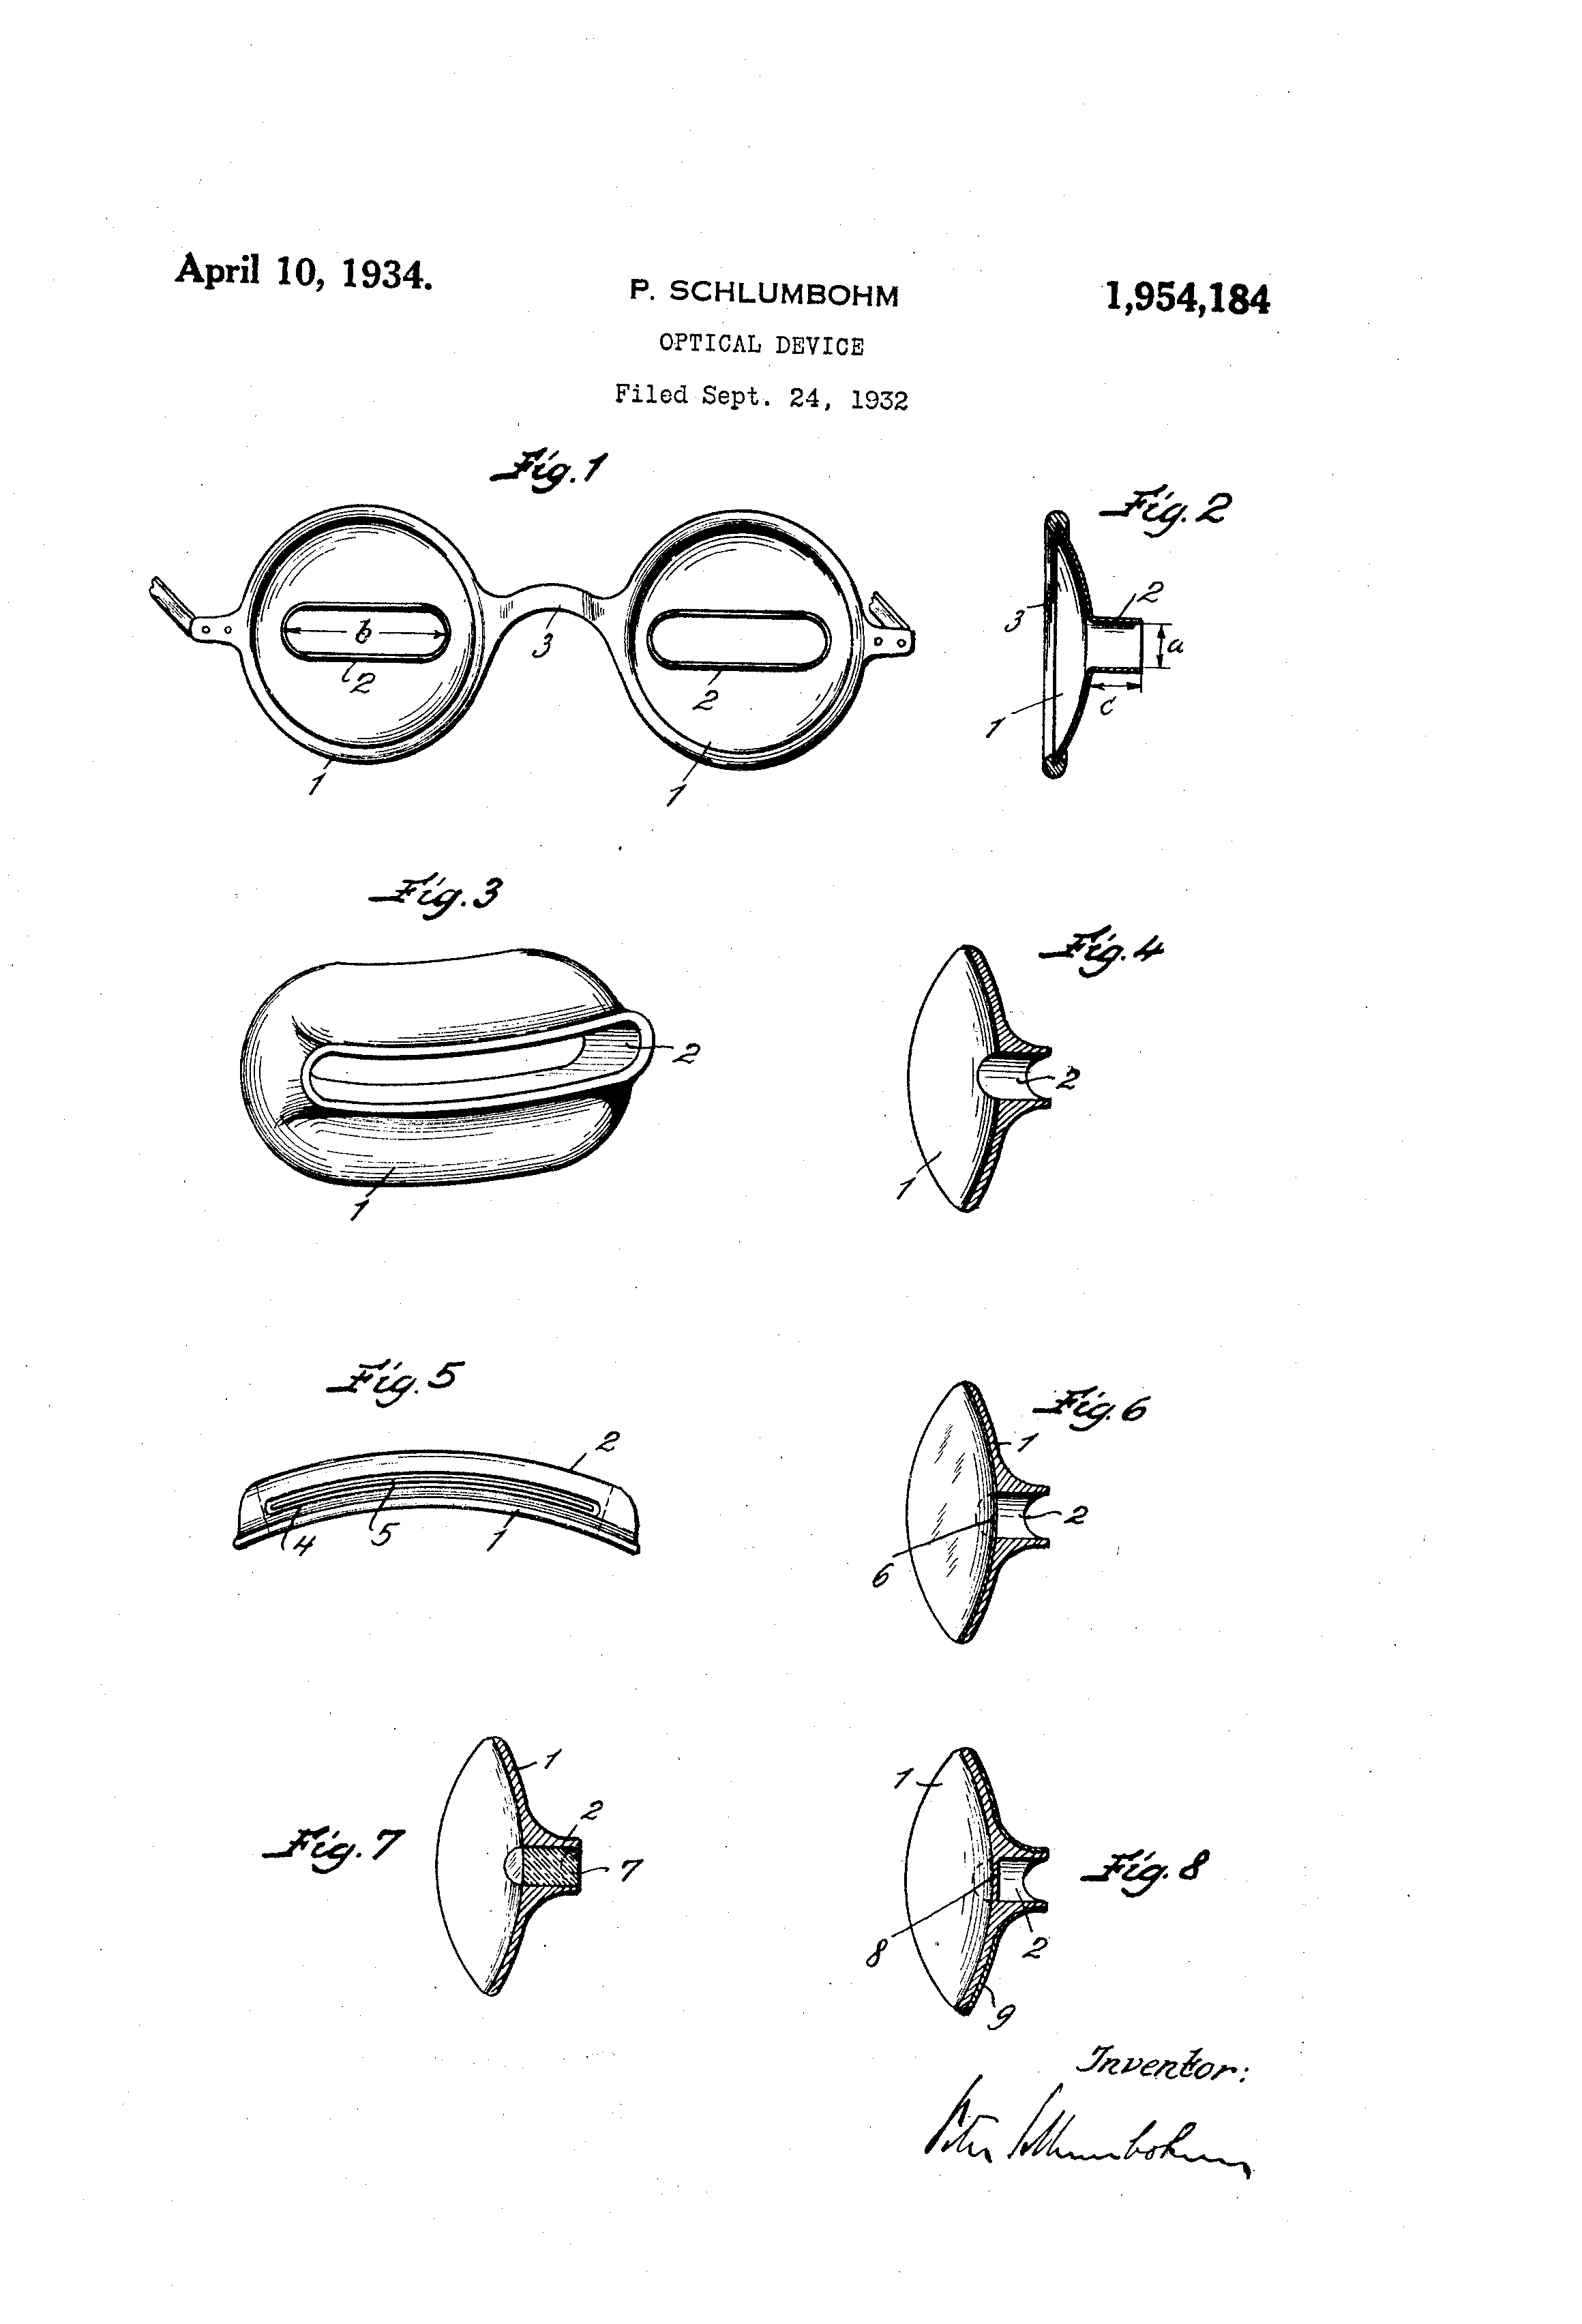 Patent drawing for Tubascope sunglasses, patent filed September 24th 1932.